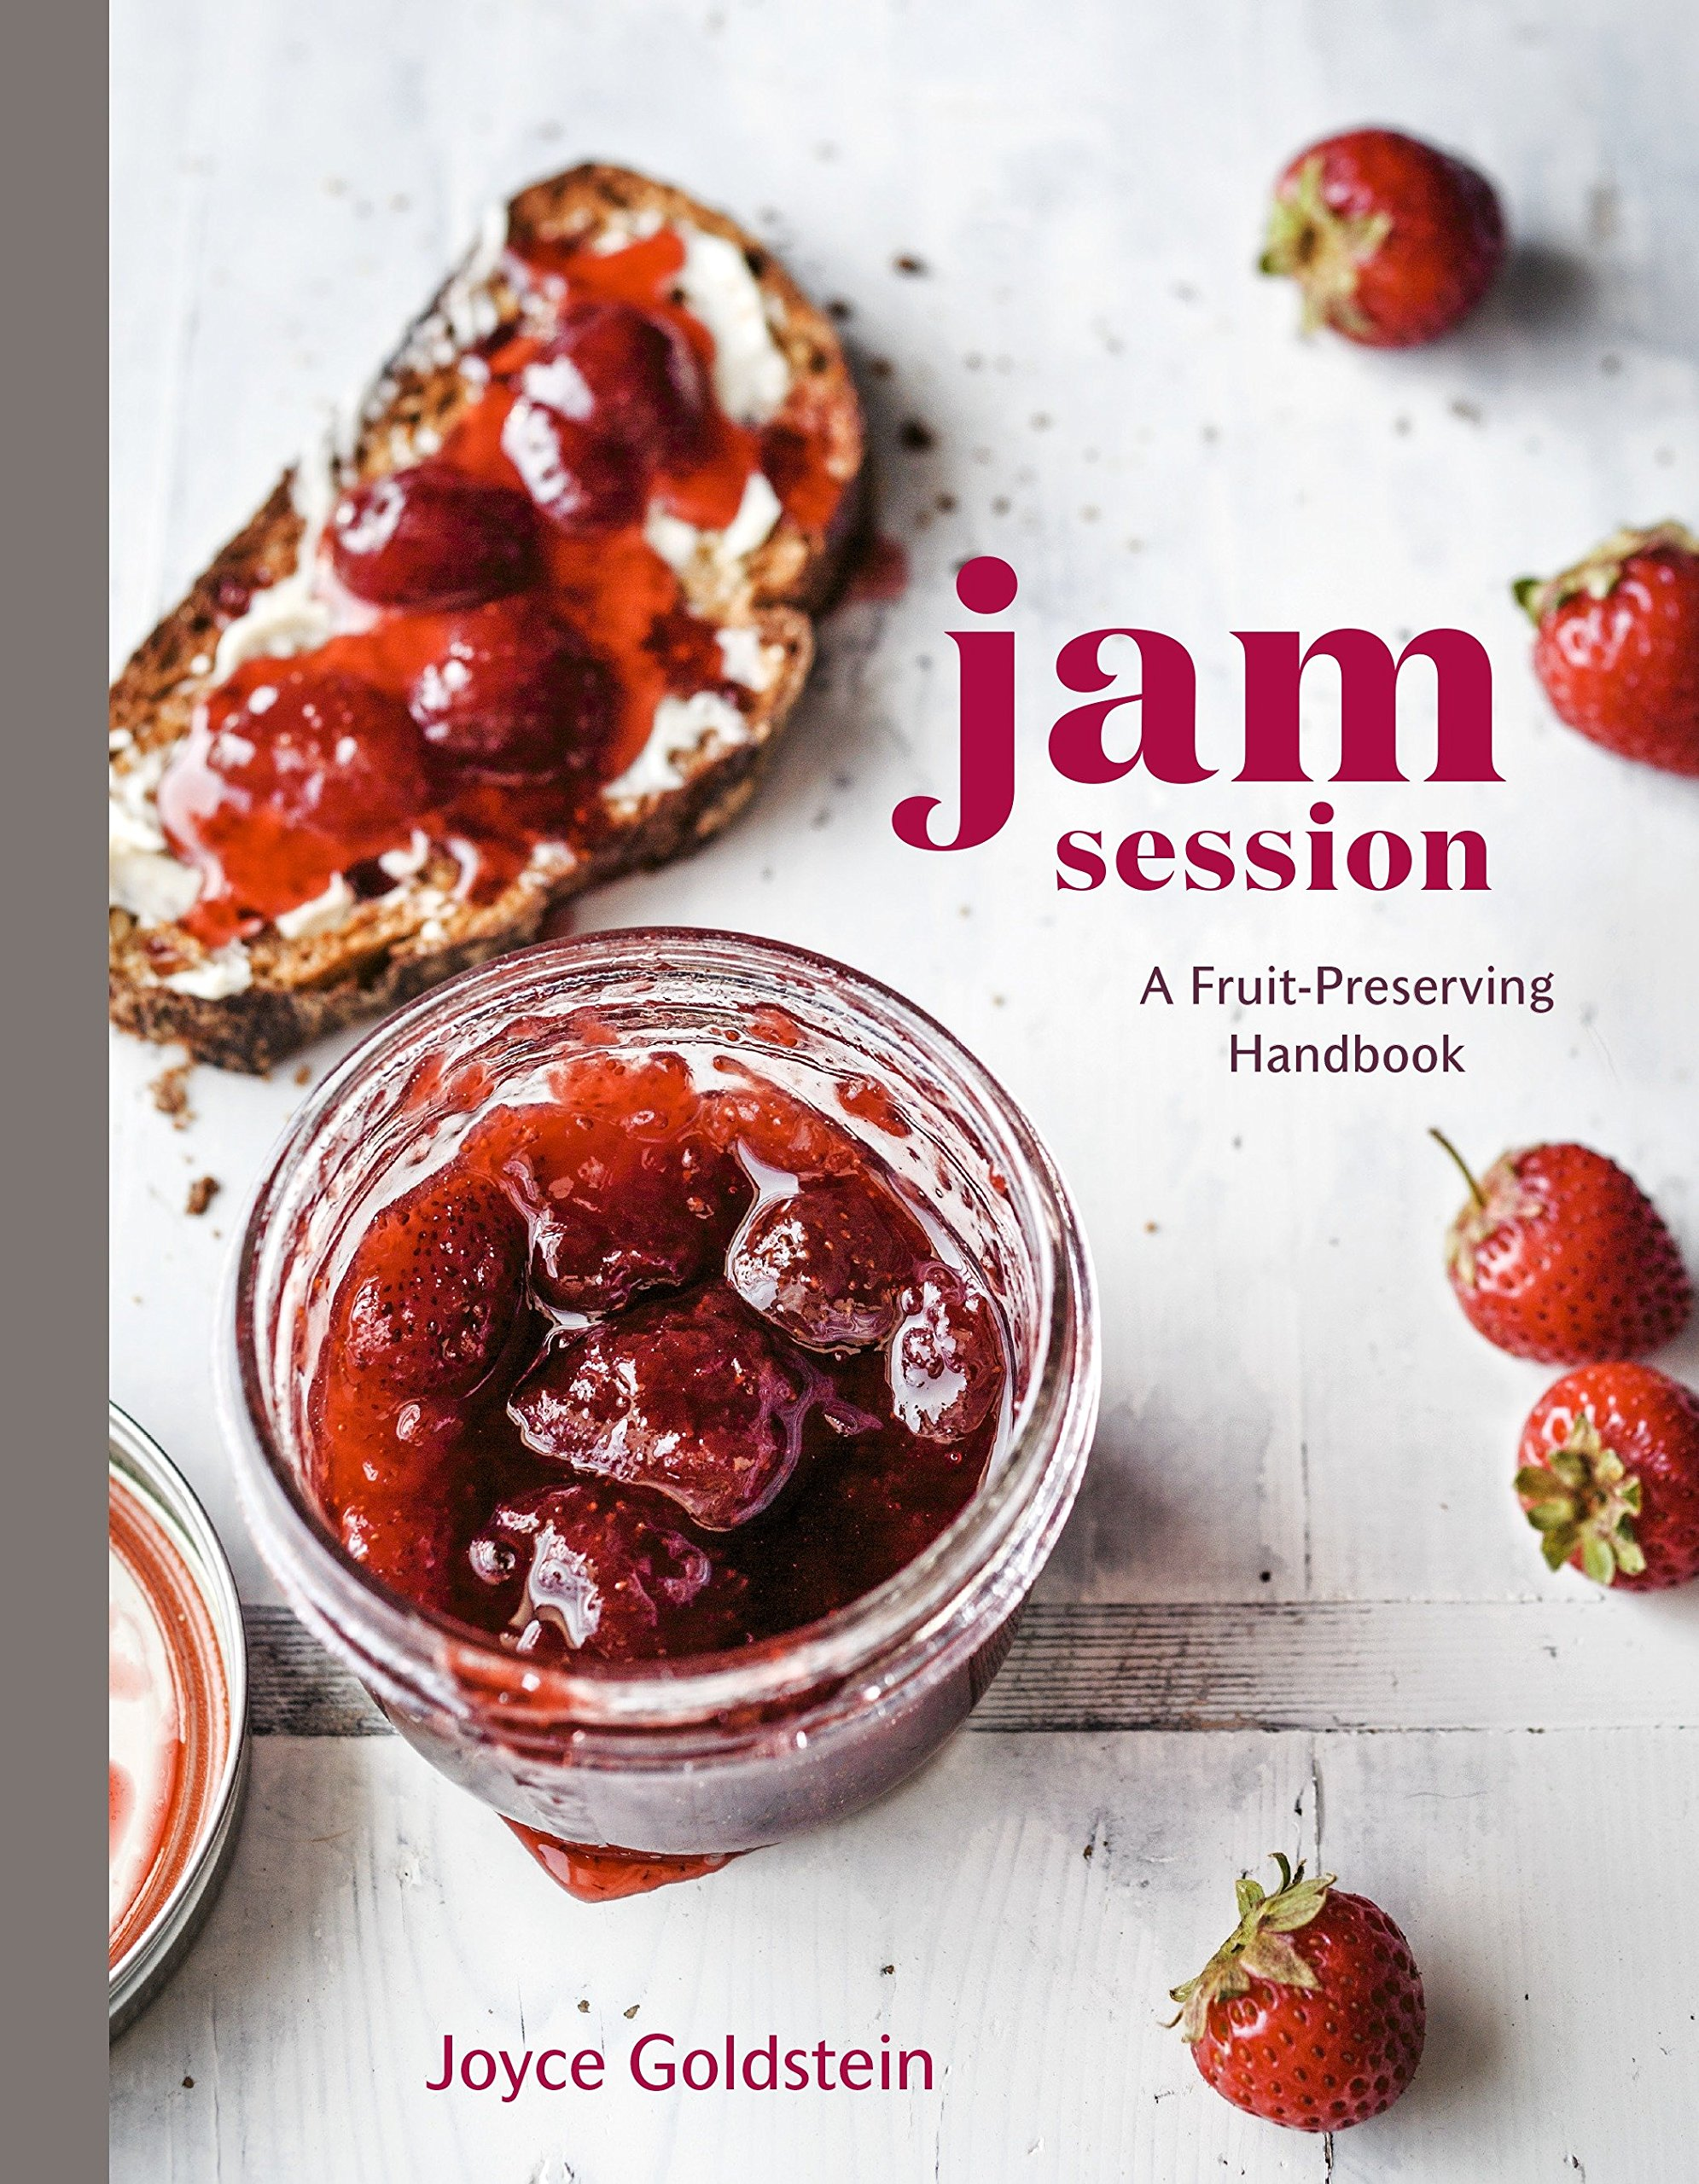 Jam Session: A Fruit-Preserving Handbook by Joyce Goldstein